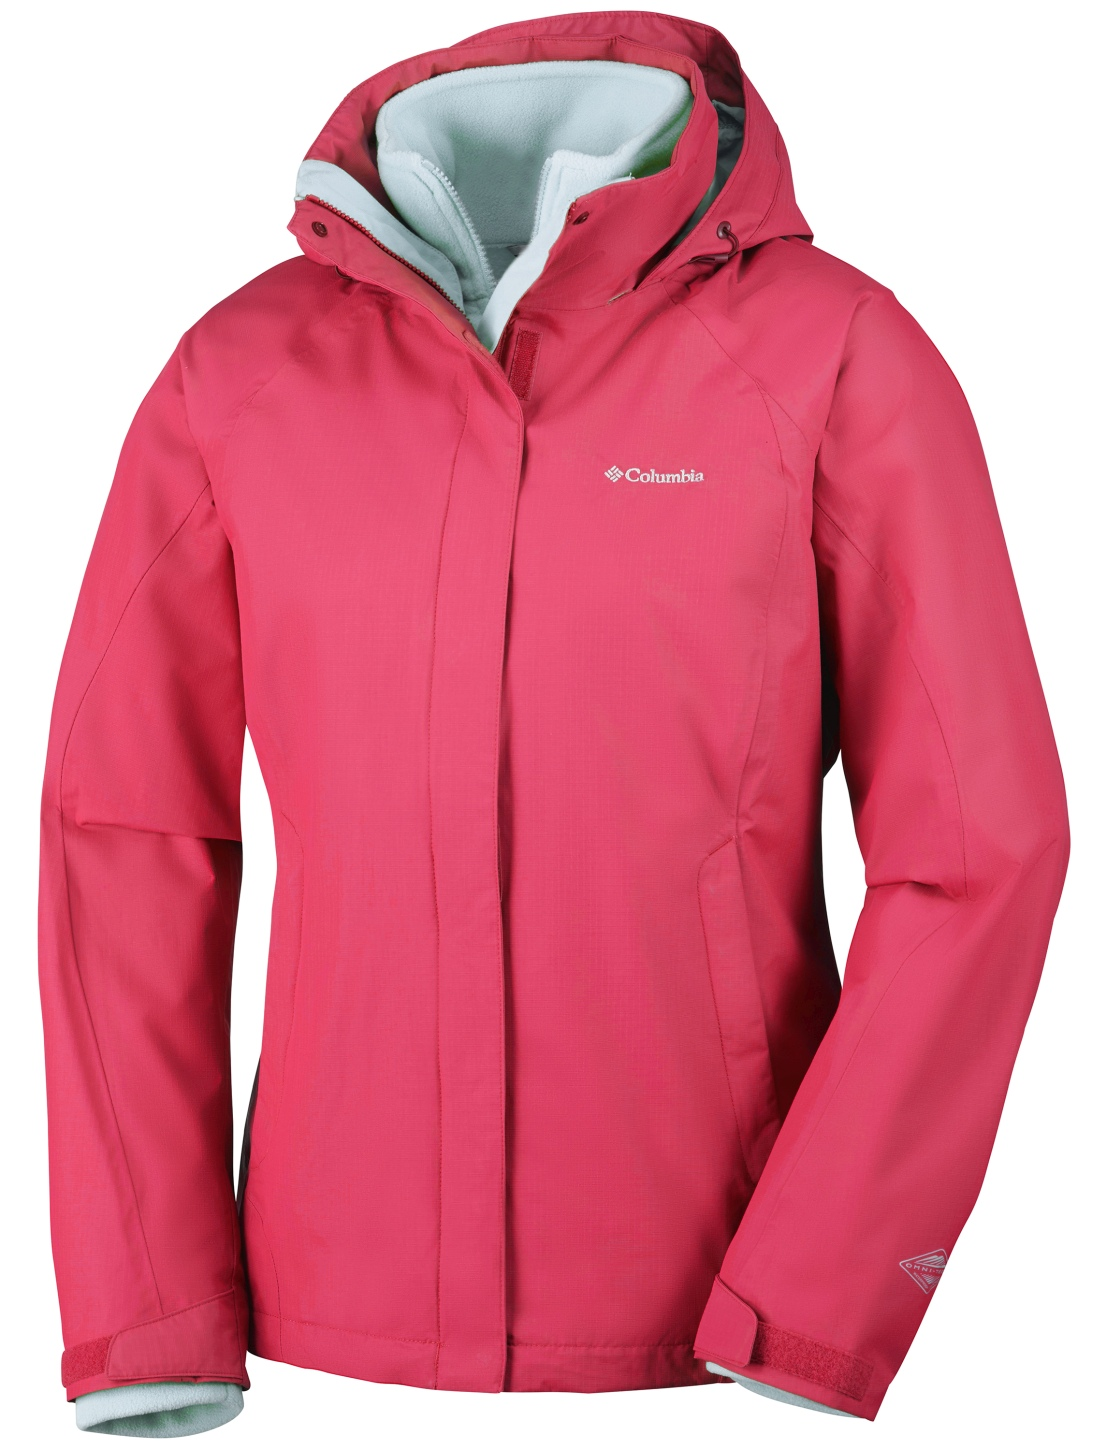 Columbia Women's Venture On Interchange Ski Jacket Red Camelia-30